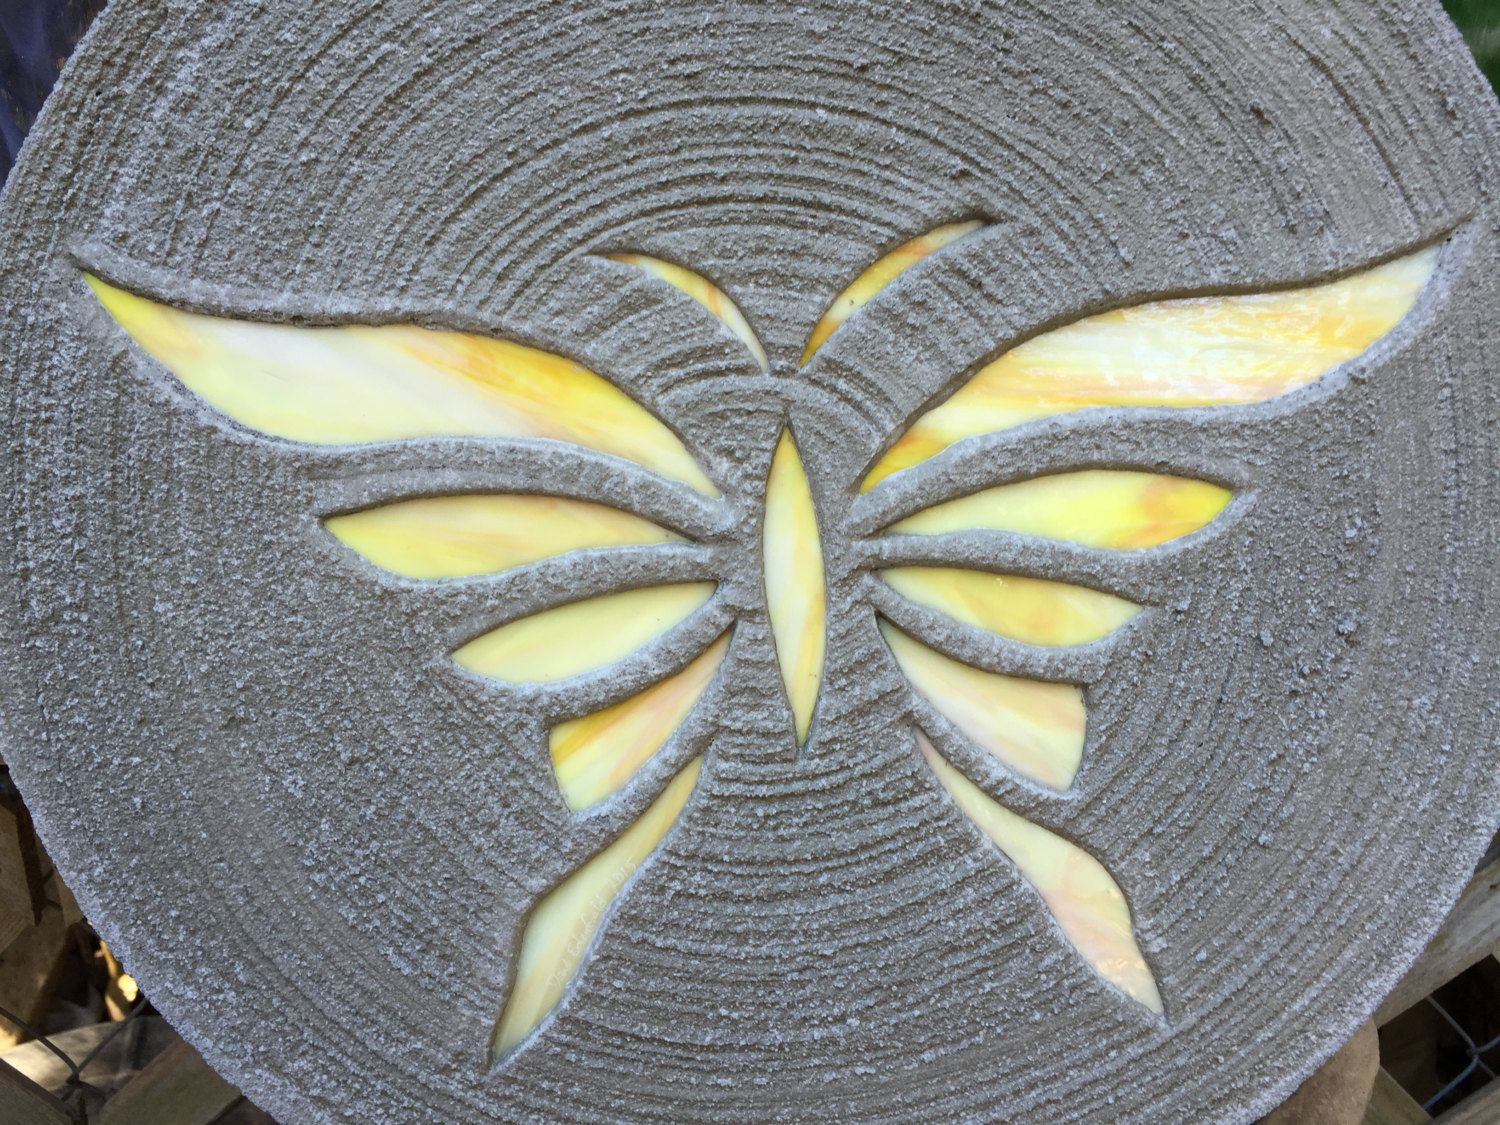 Yellow Erfly Stepping Stone 18 Inch Diameter Concrete Stained Gl Mosaic For Yard Art Or Garden Path Ornament Decor By